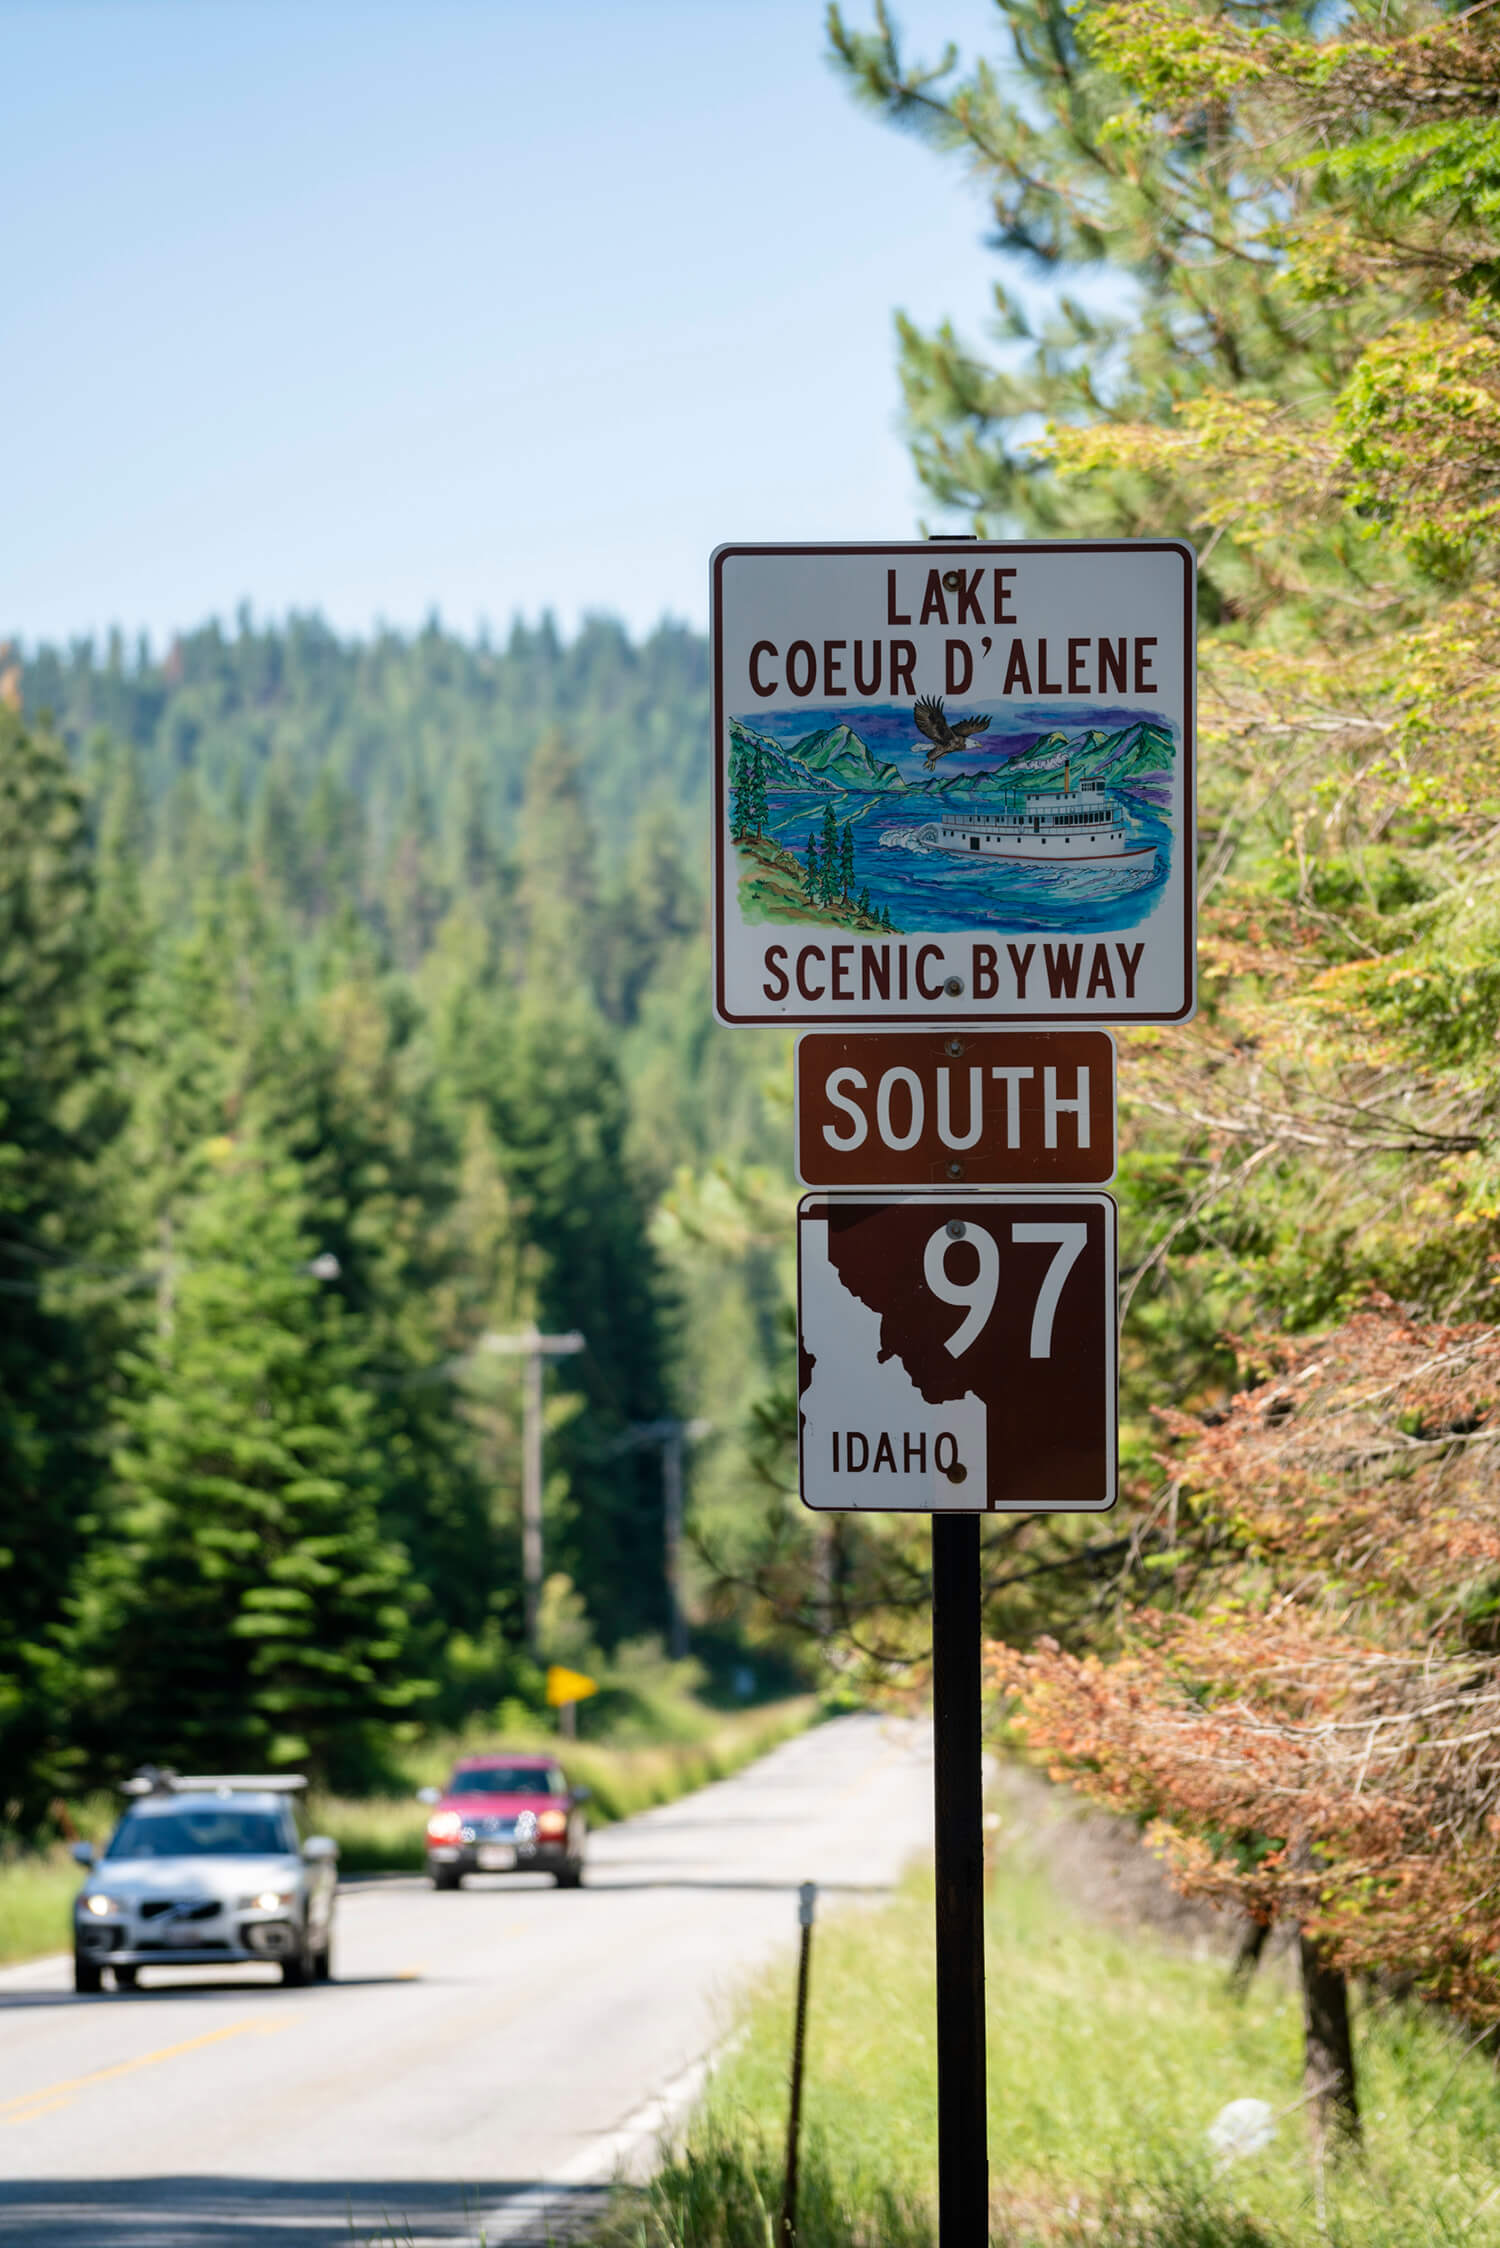 road signs indicating Lake Coeur d'Alene scenic byway and Idaho state highway with two cars driving along the tree-lined byway in the background